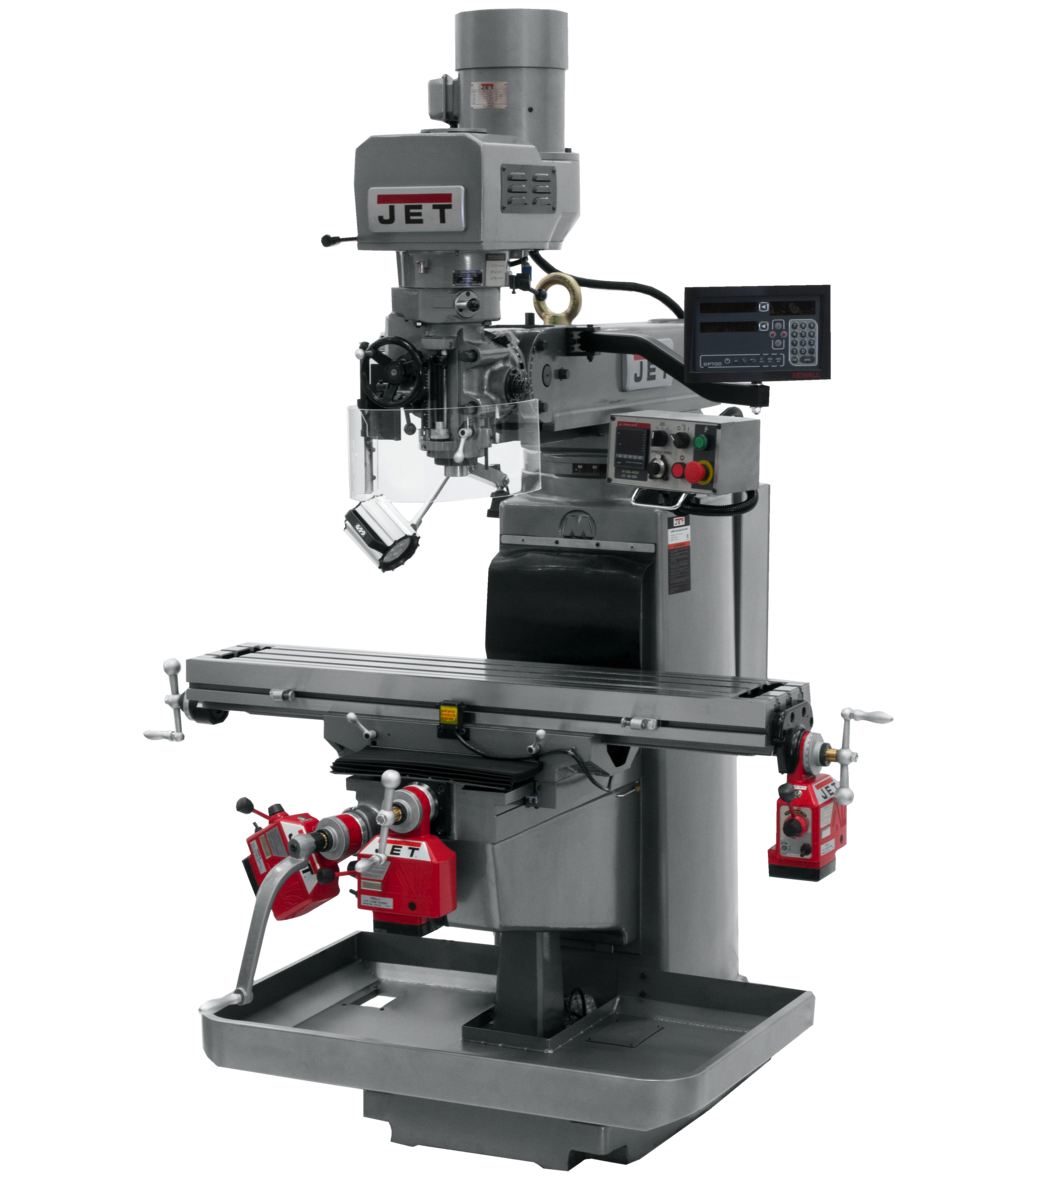 JTM-1050EVS2/230 Mill With Newall DP700 DRO With X, Y and Z-Axis Powerfeeds